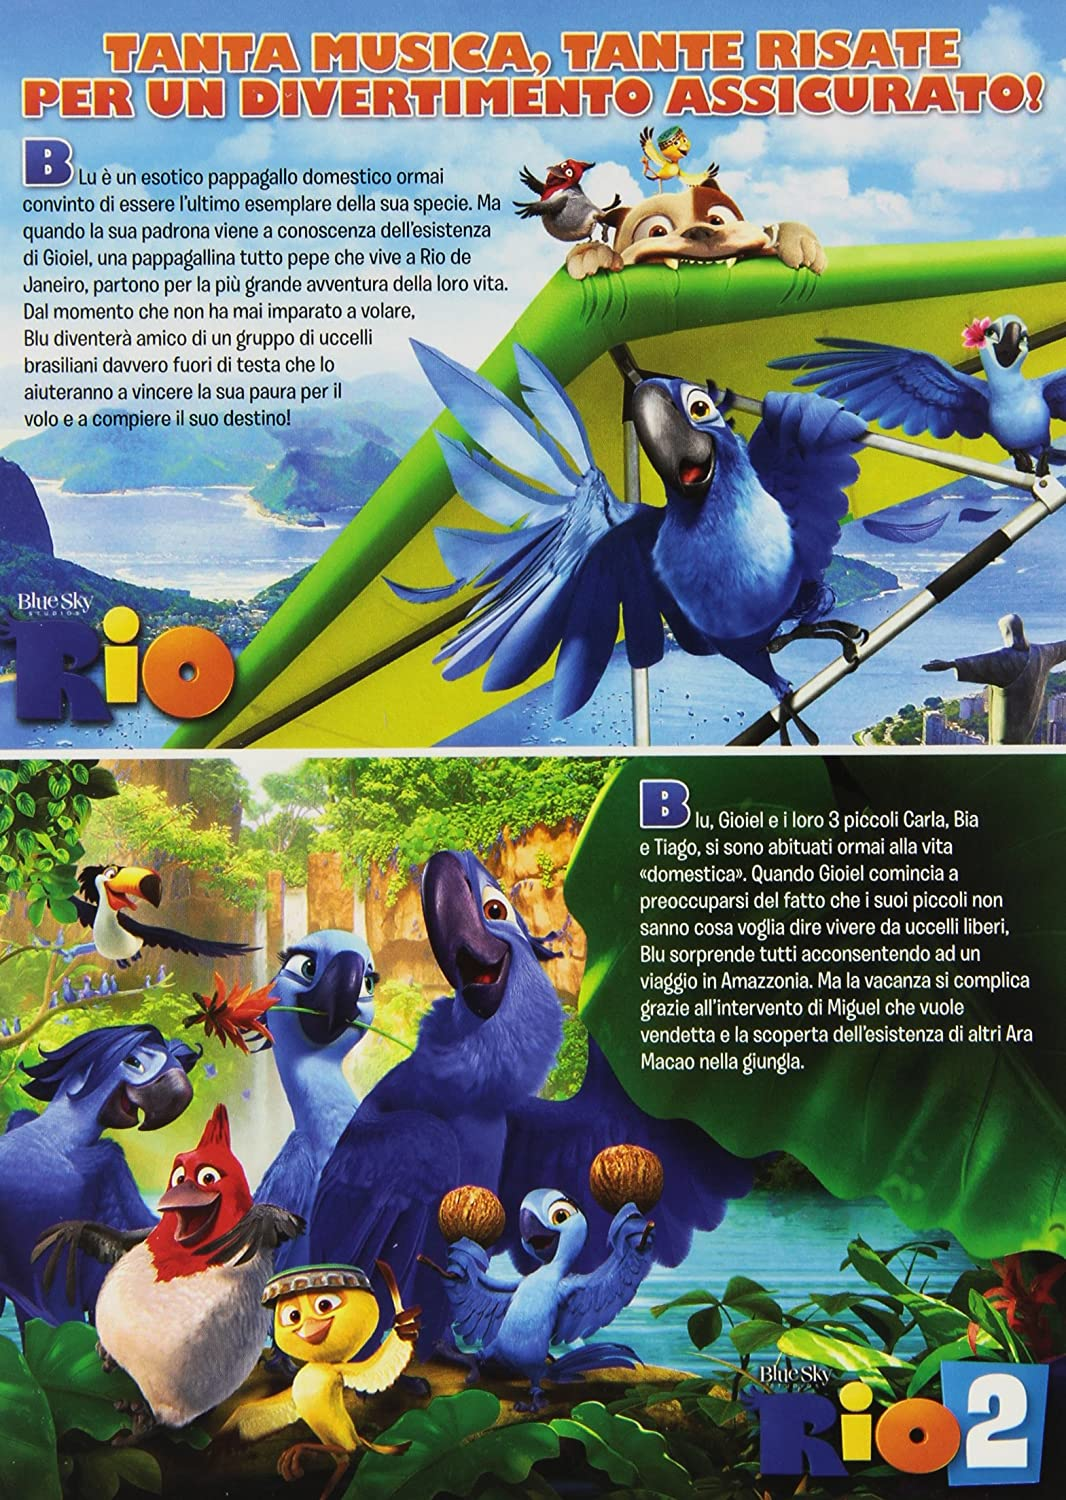 Amazon.com: Rio + Rio 2 - Missione Amazzonia (+peluche) [2 DVDs] [IT Import]Rio + Rio 2 - Missione Amazzonia (+peluche) [2 DVDs] [IT Import]: Movies & TV